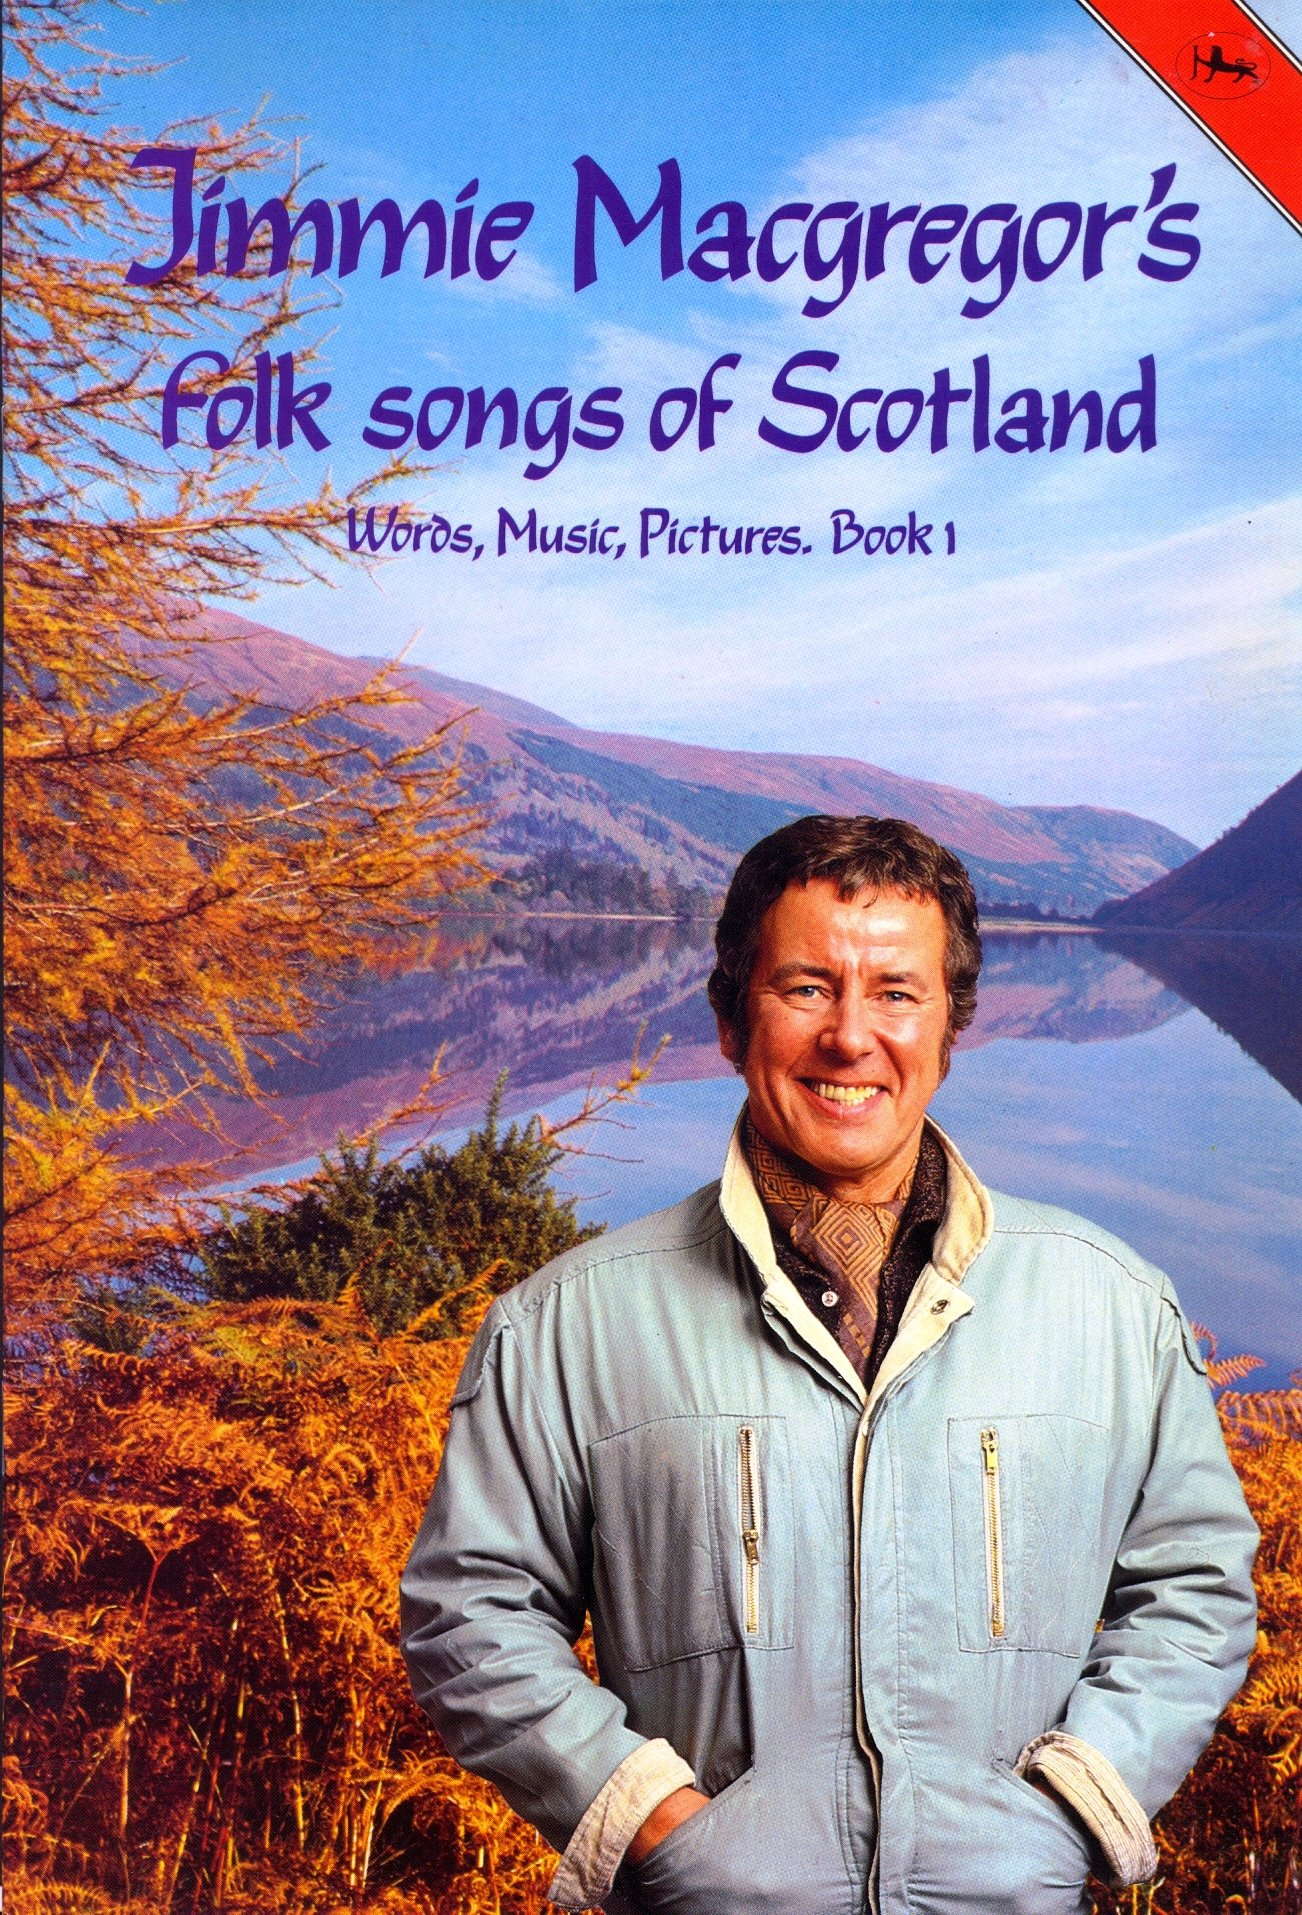 Folk Songs of Scotland: Words, Music, Pictures, Book 1